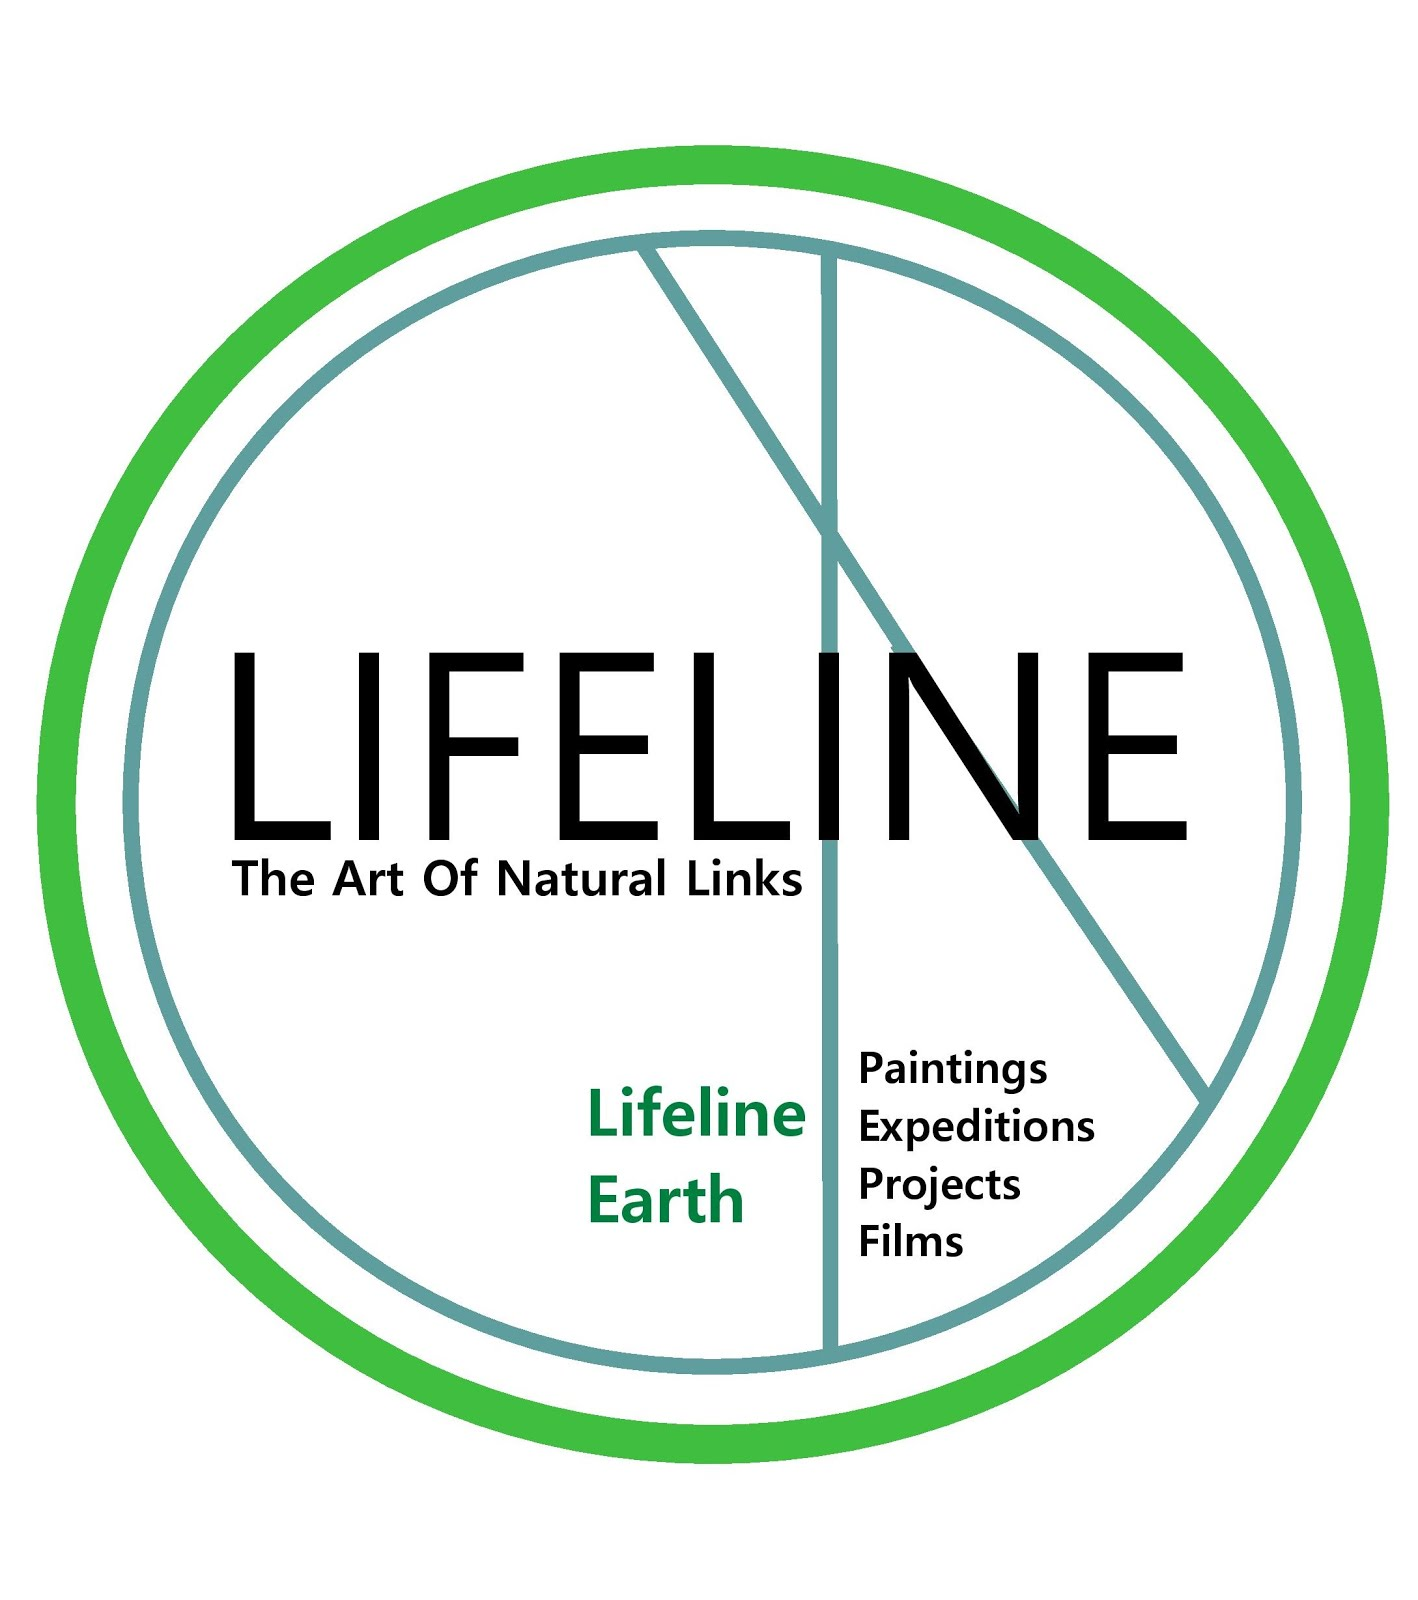 LIFELINE WEBSITE